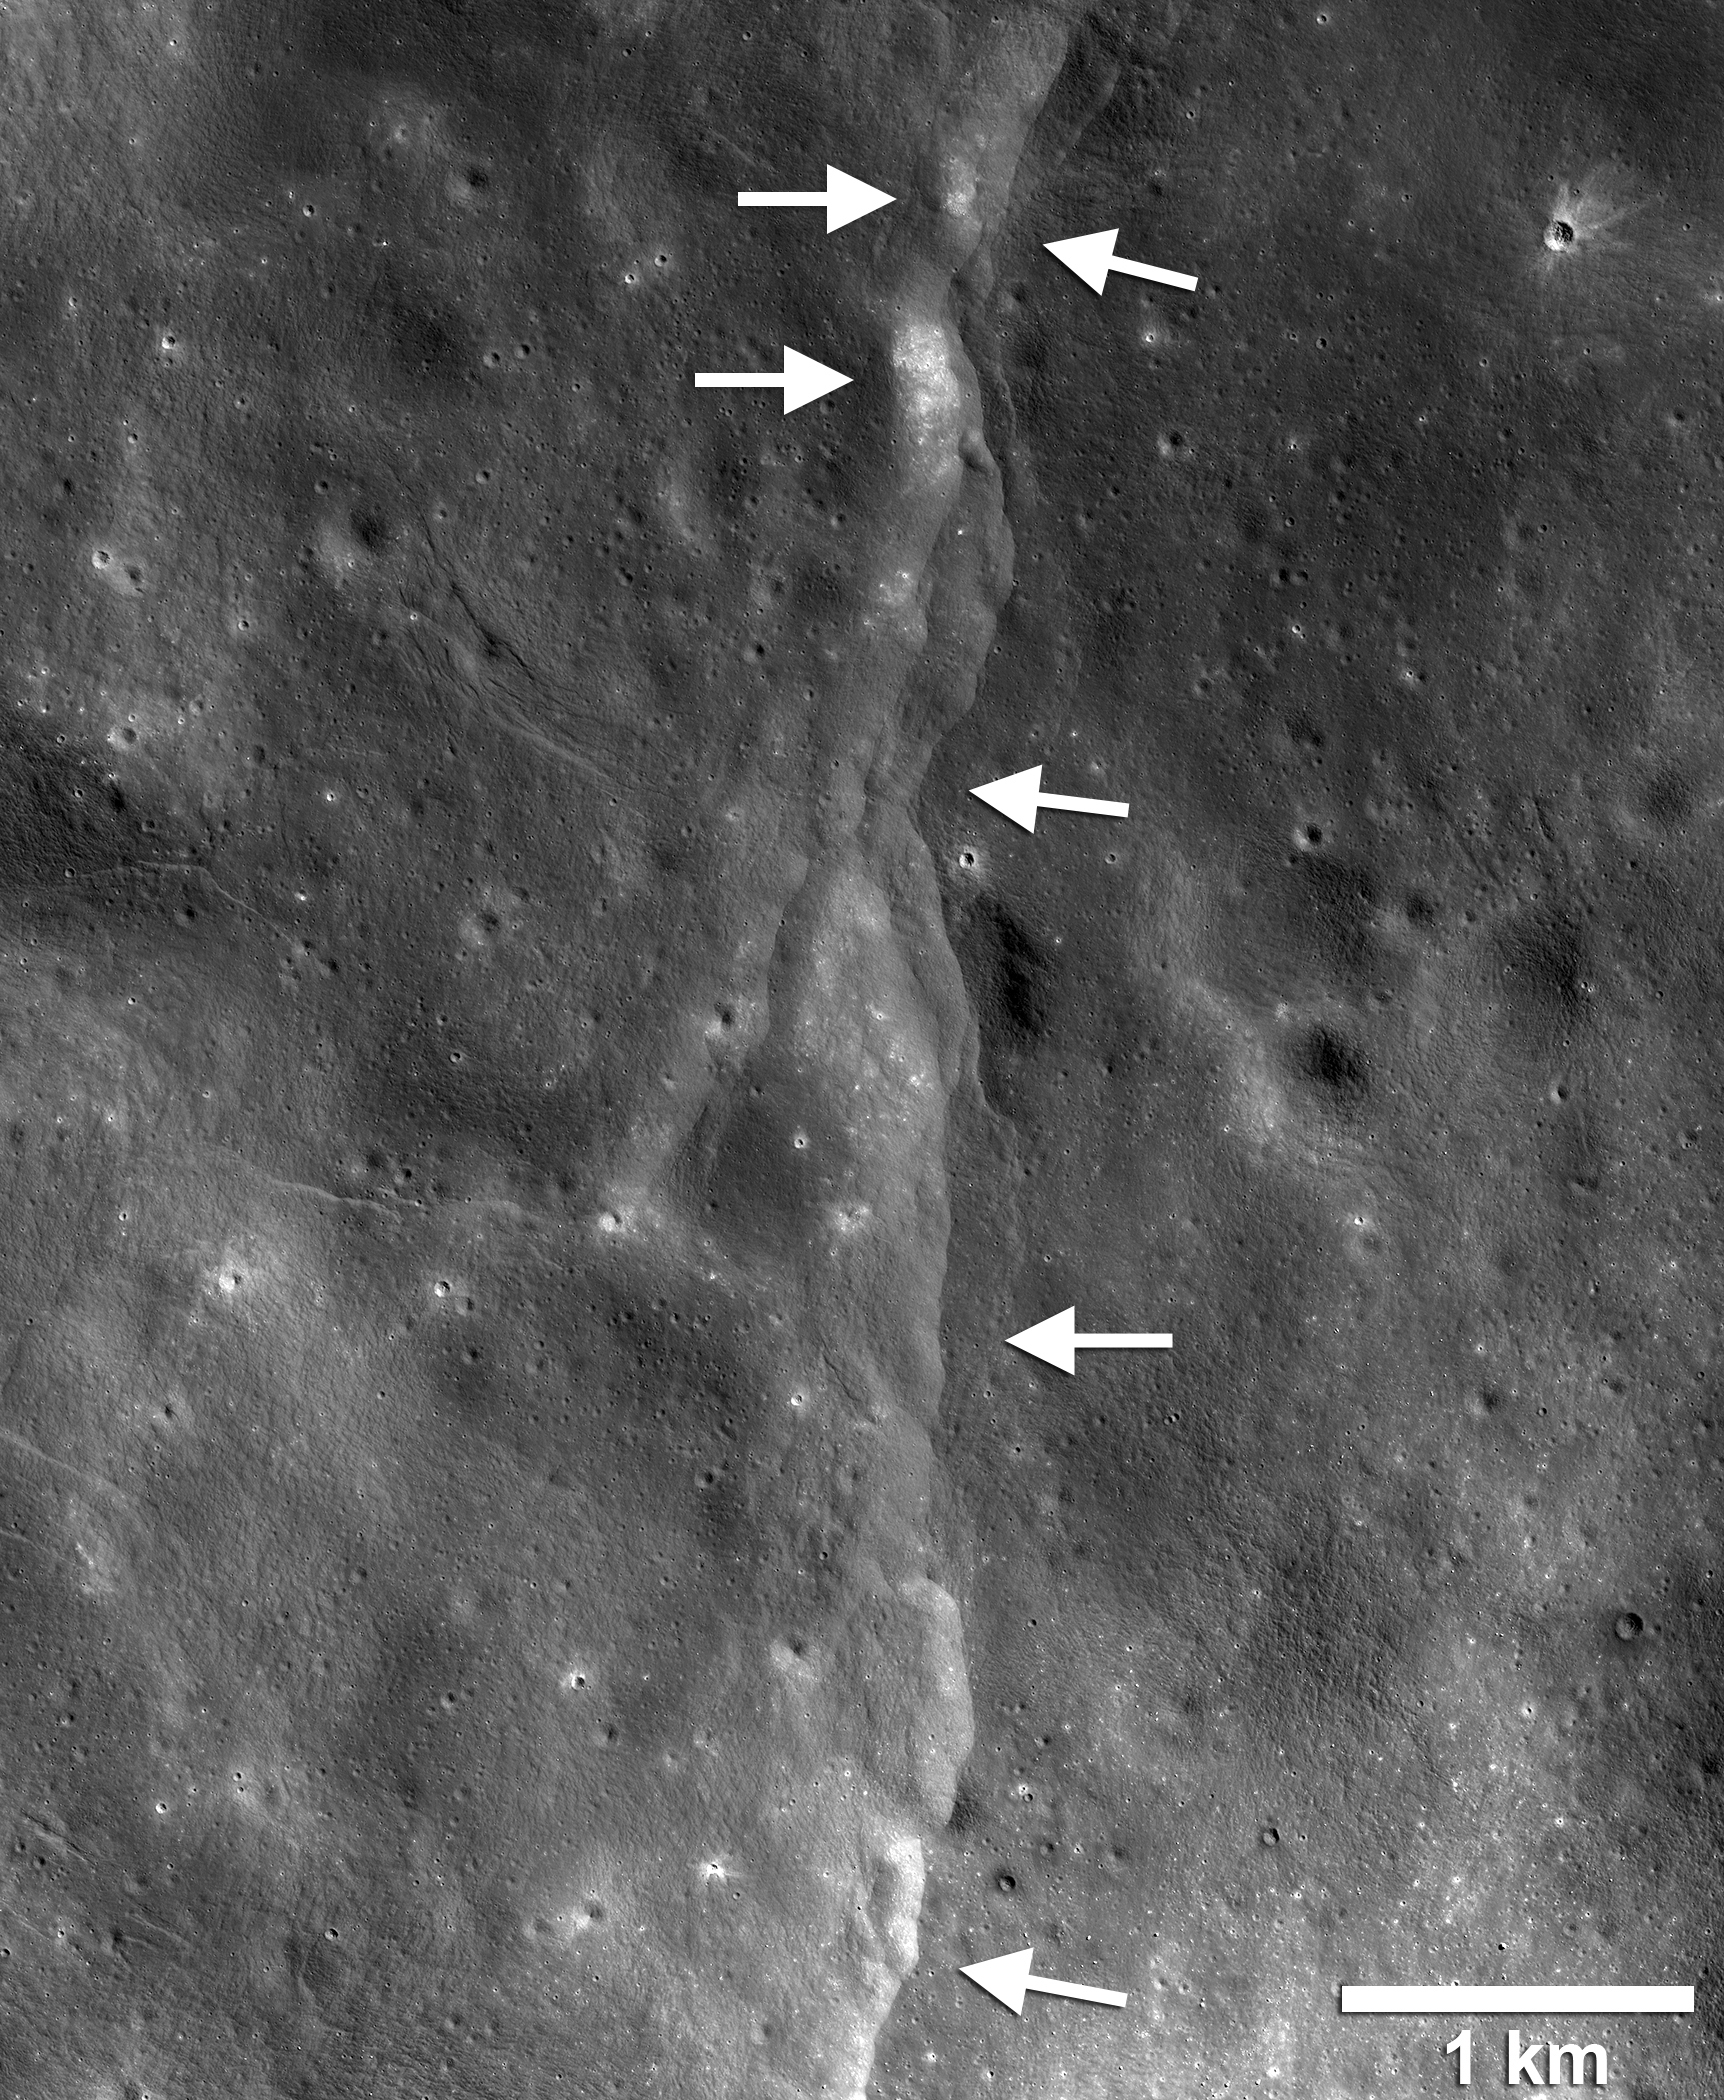 The Moon Is Shrinking Like Grapes Generating Moonquakes, According to NASA